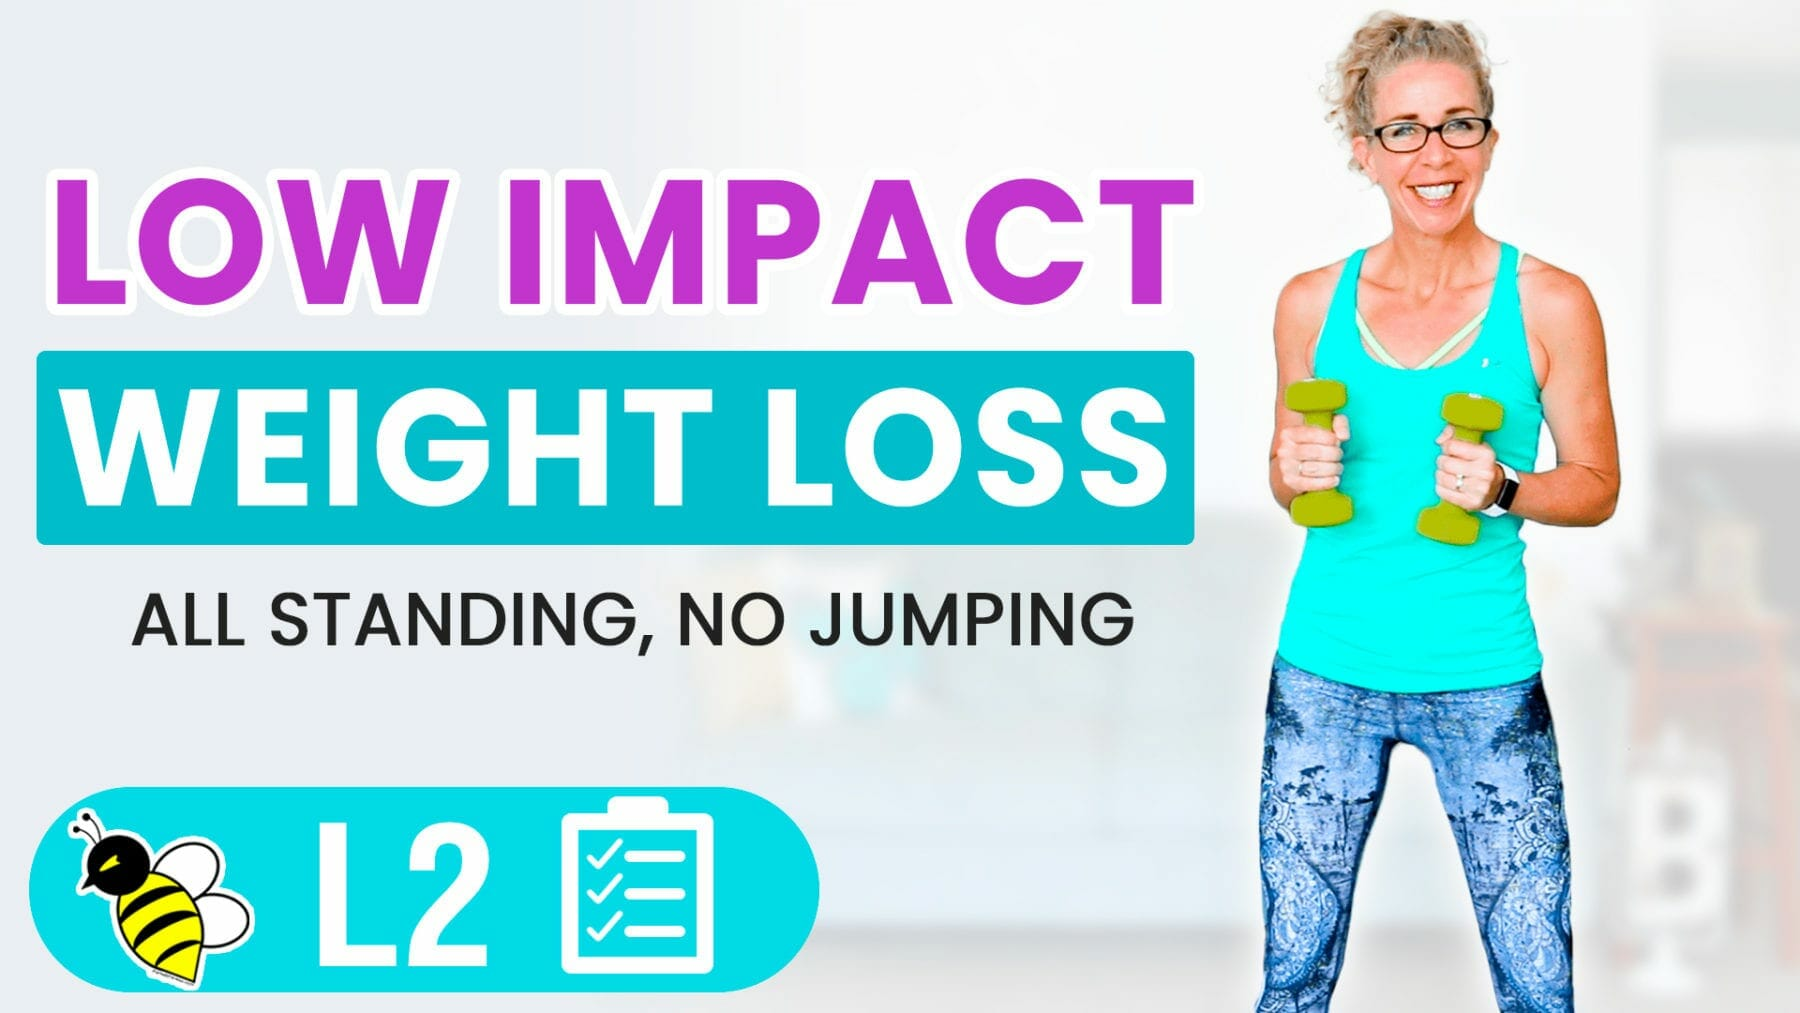 25 Minute Low Impact WEIGHT LOSS Workout with Weights BURN 250 Calories